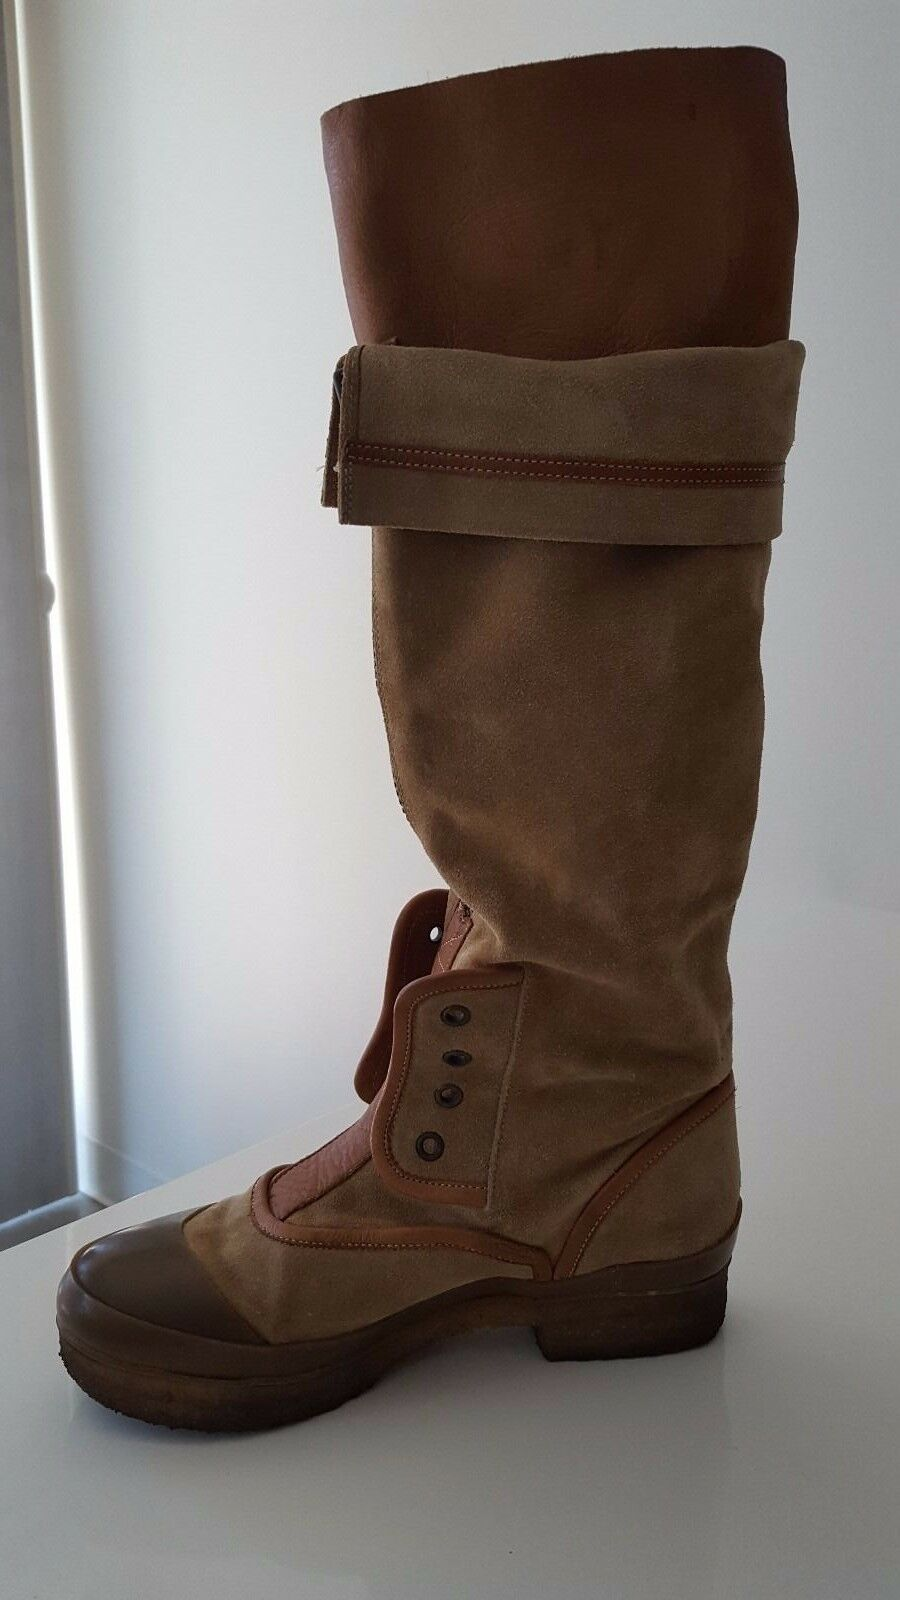 Chloe Tan Suede and Leather Combo Slip On Fashion Snow Snow Snow Boots Sz 36 1 2( 6.5 US ) 86d5a3